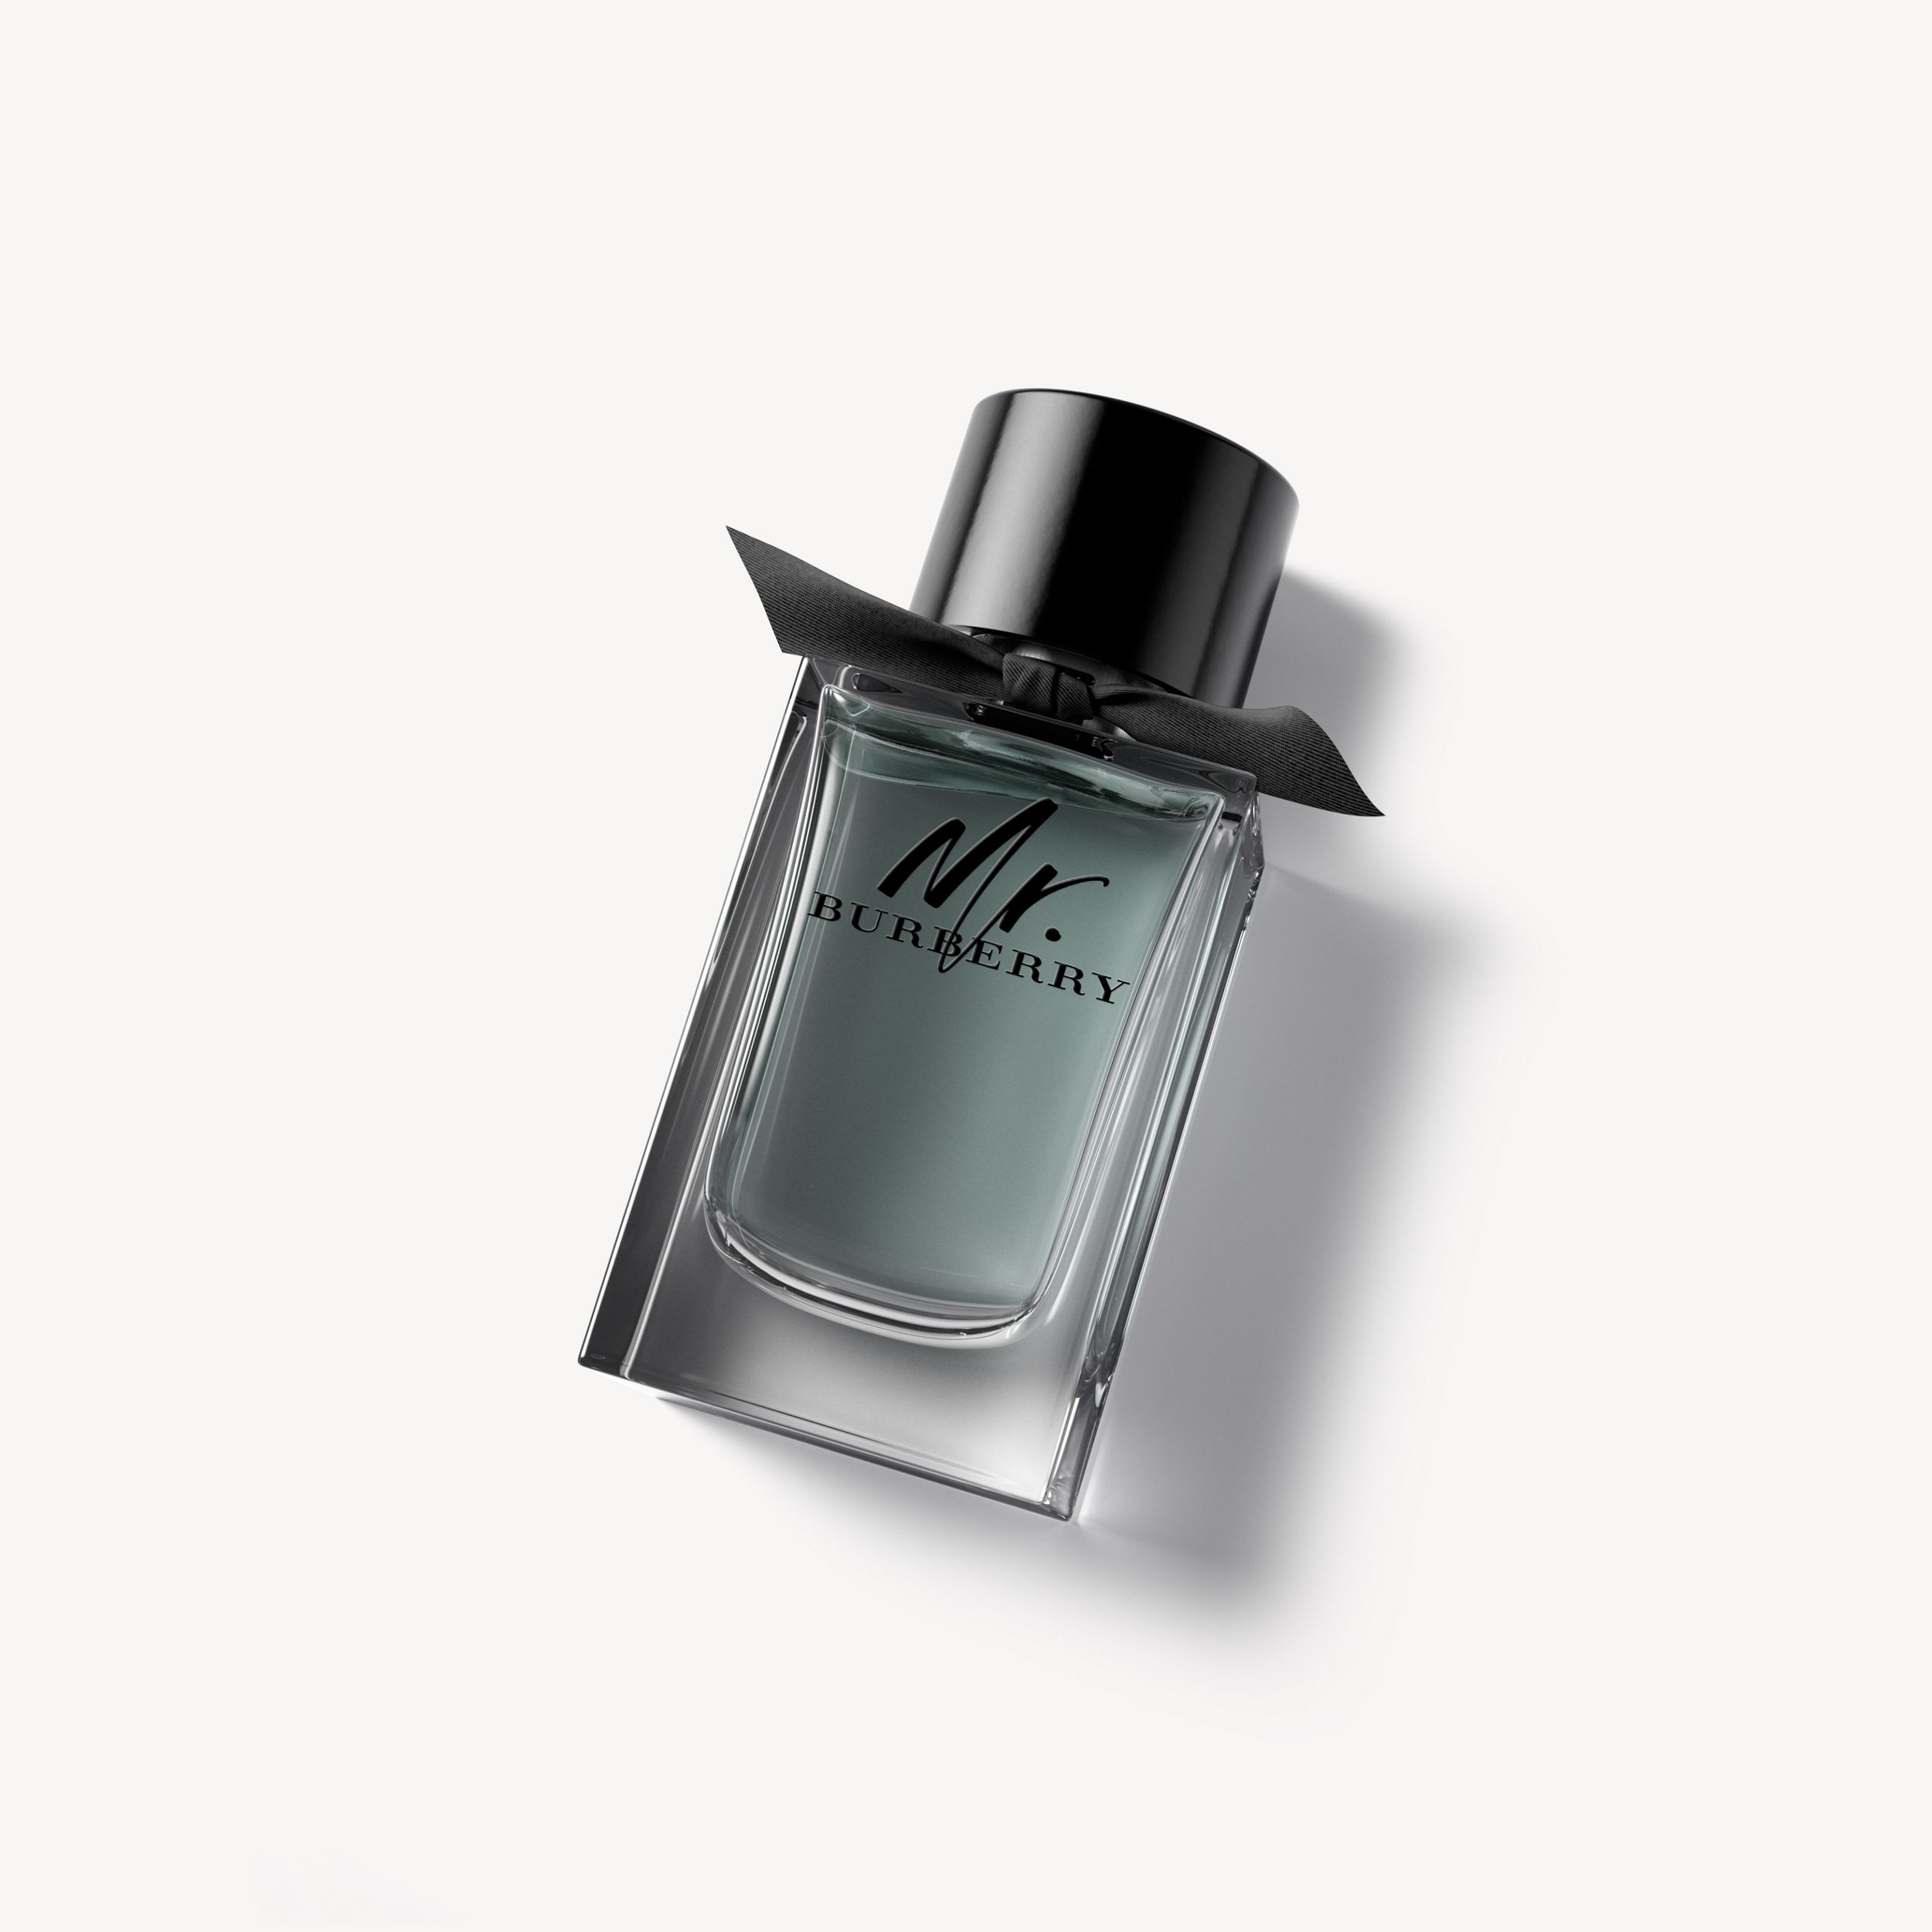 Mr. Burberry Eau de Toilette 150ml - Men | Burberry - 1